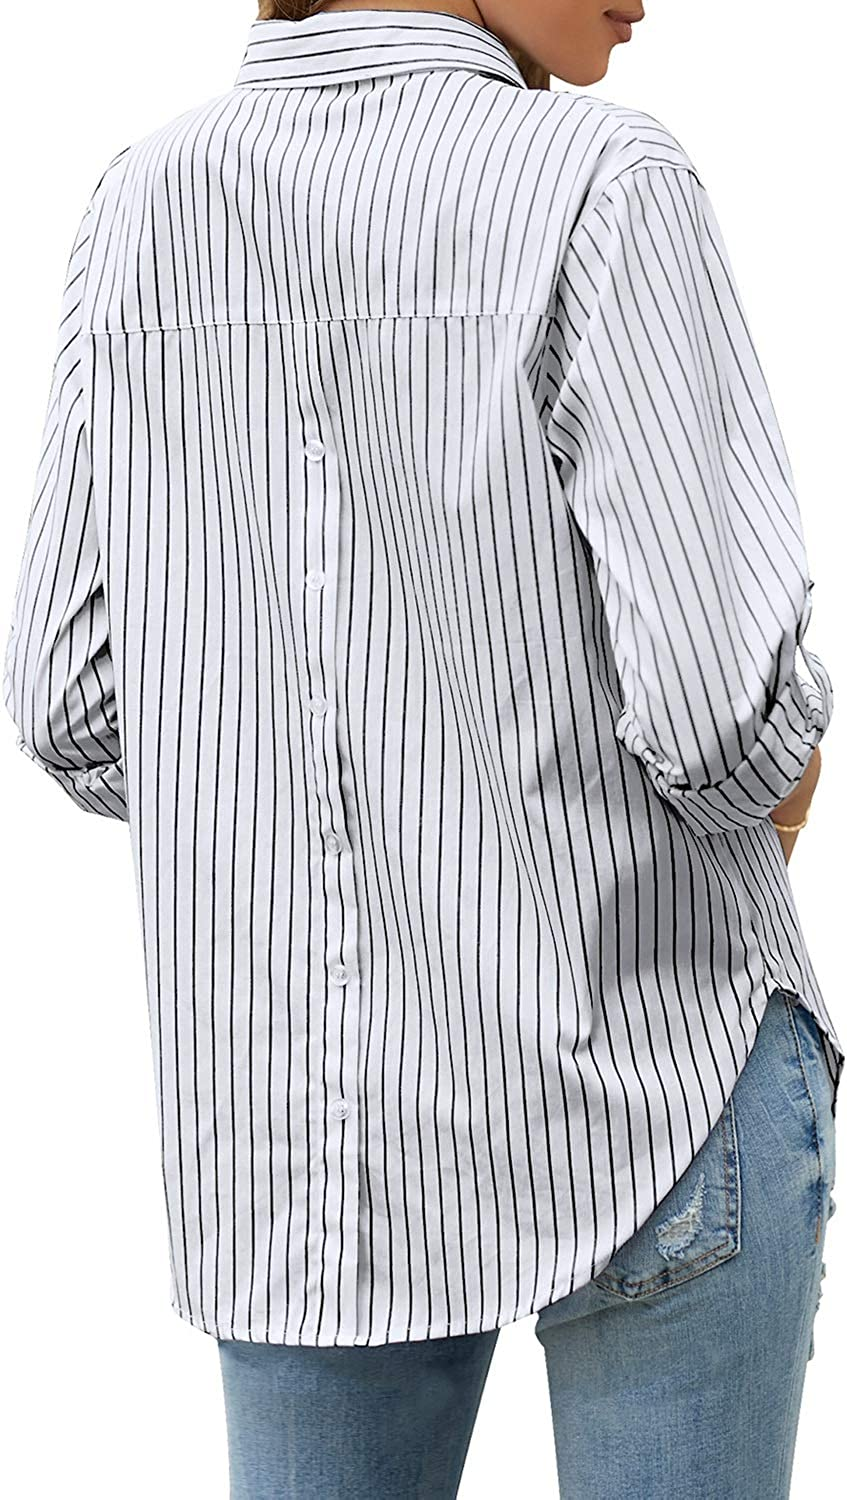 LookbookStore Women's Casual Button Down Striped Shirt Long Sleeve Loose Blouse Tops